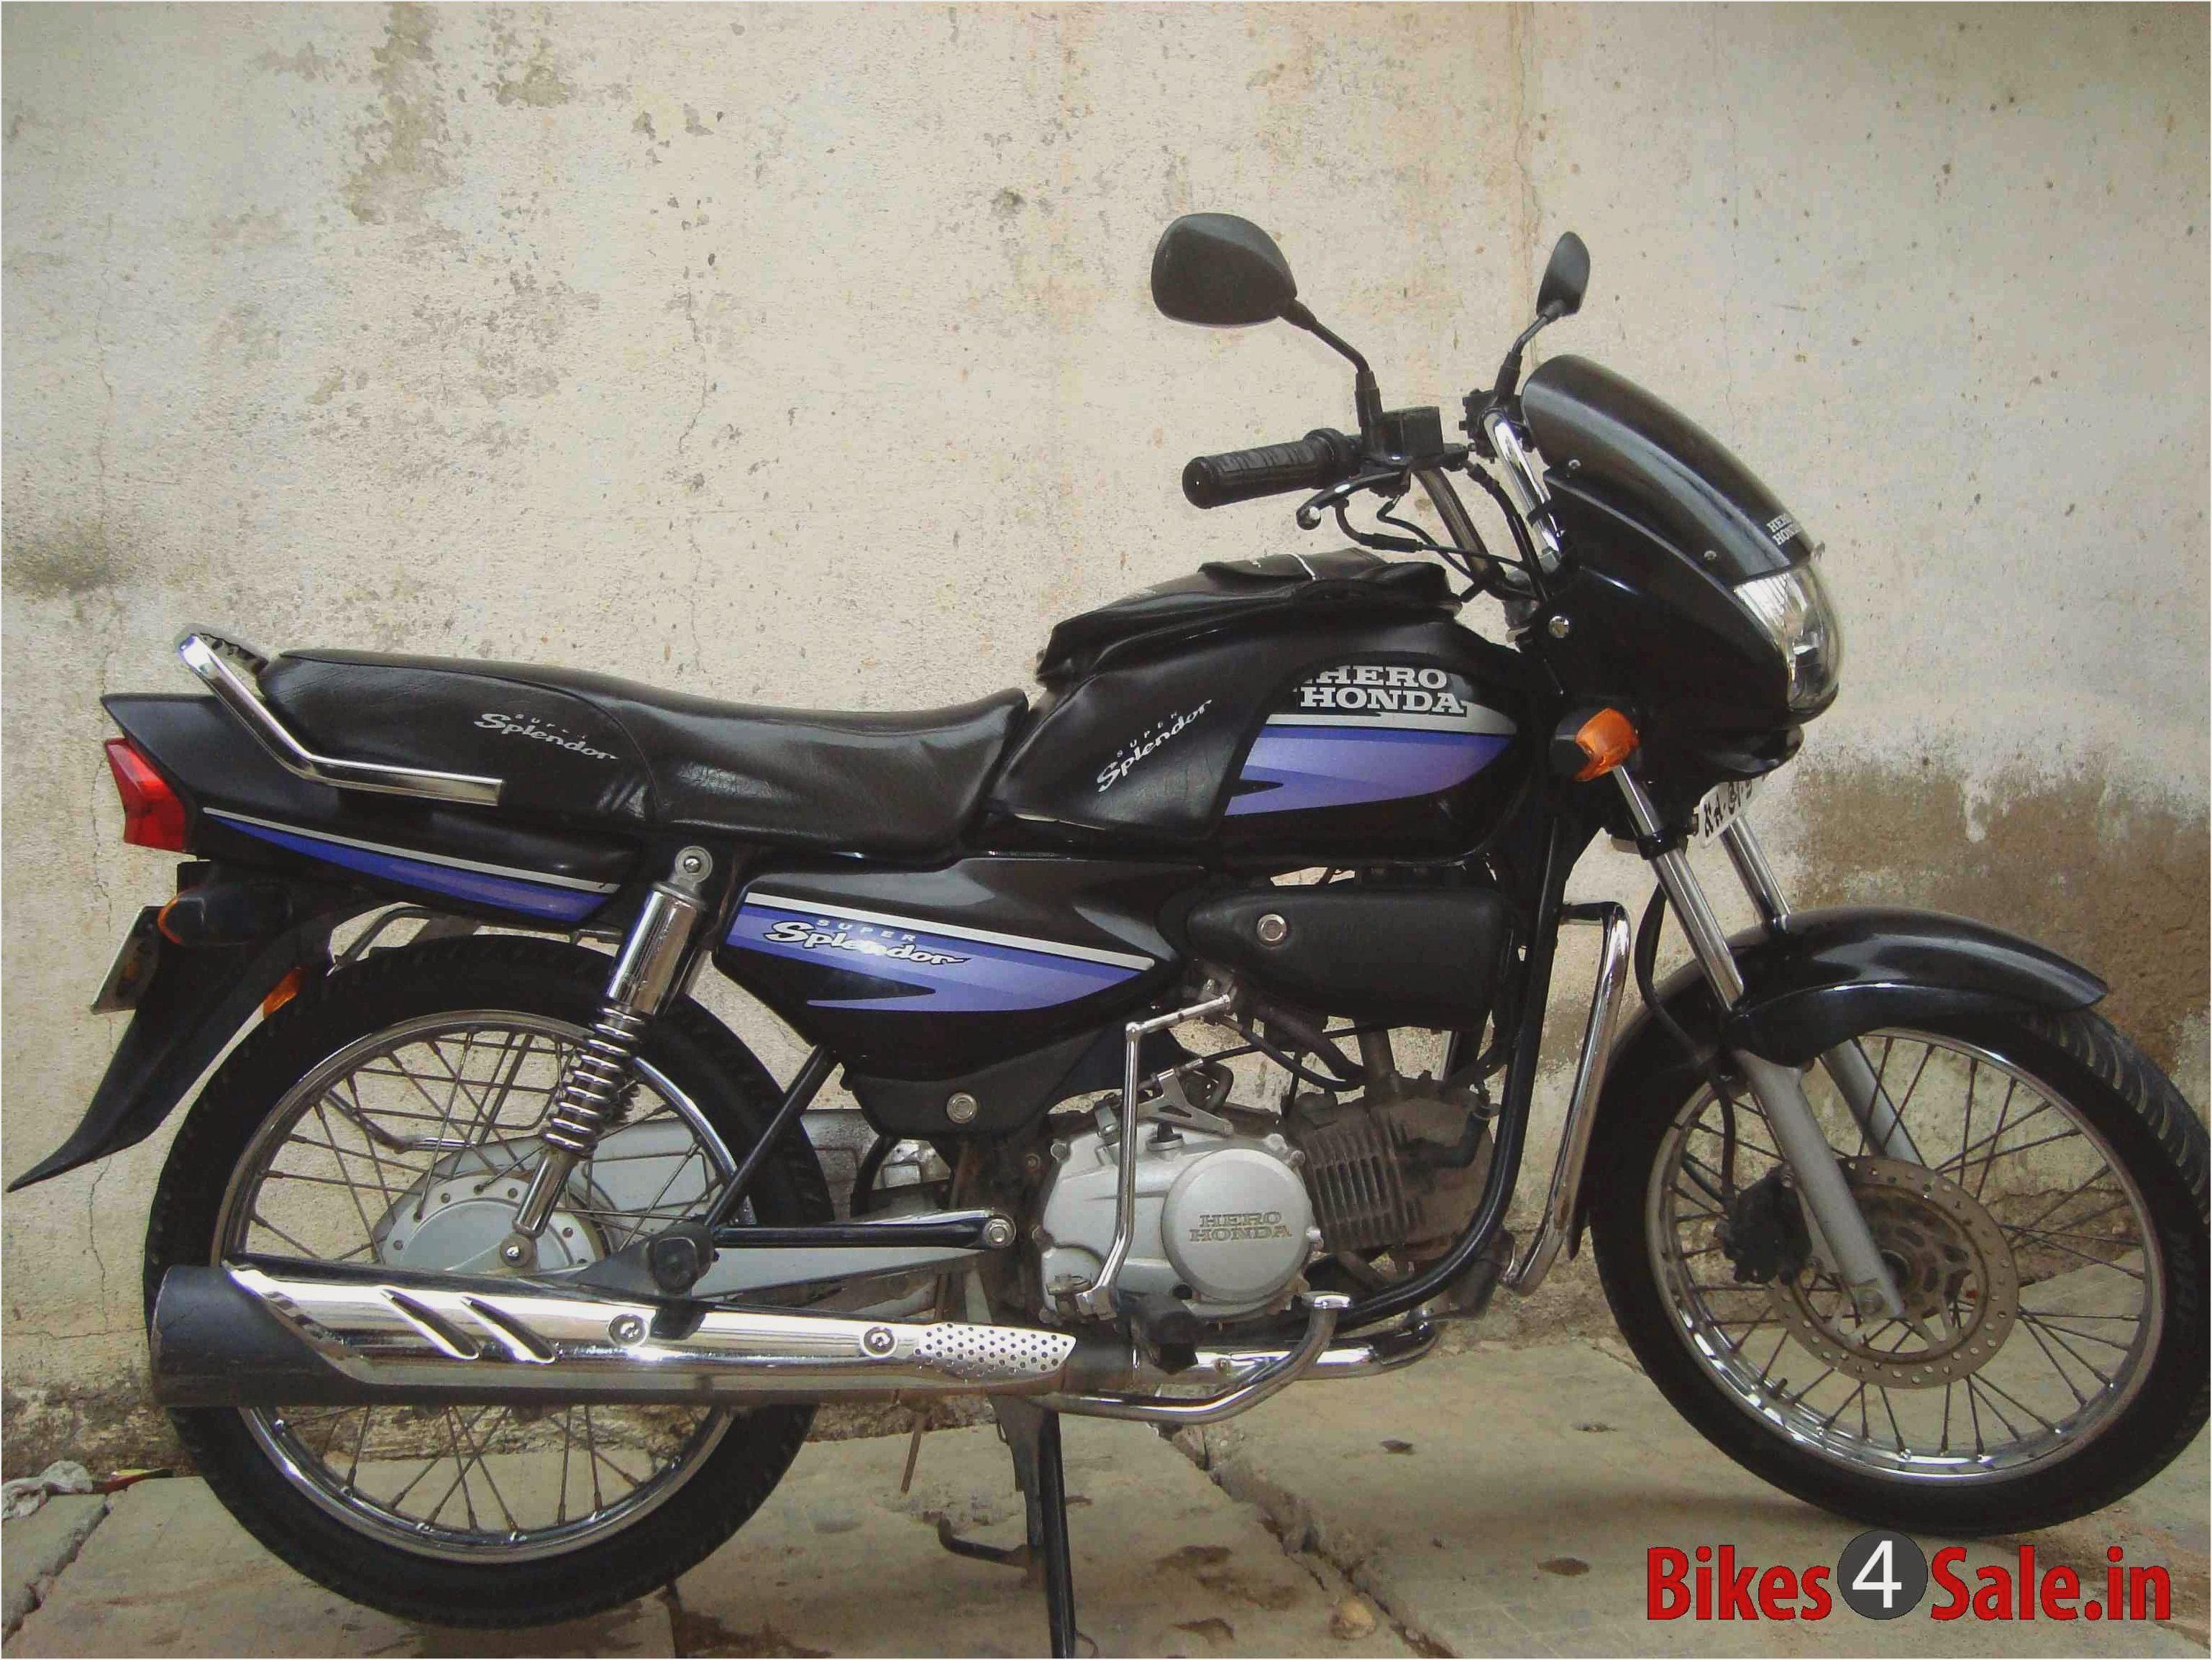 Hero Honda 125 Super Splendor 2008 images #74792